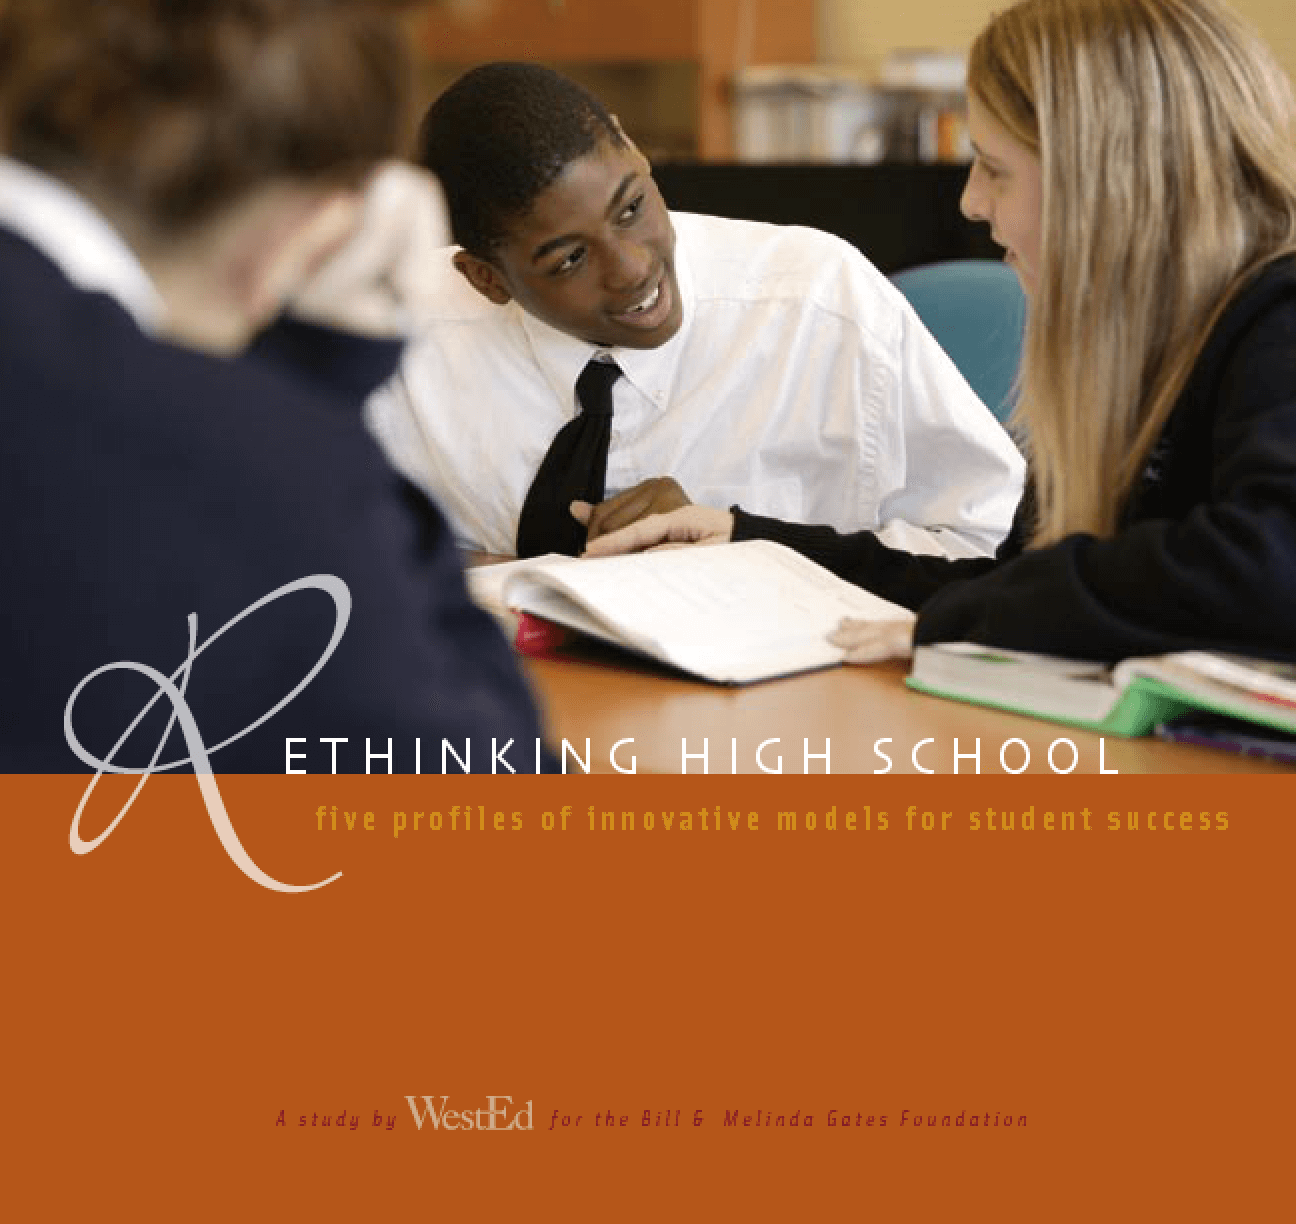 Rethinking High School: Five Profiles of Innovative Models for Student Success